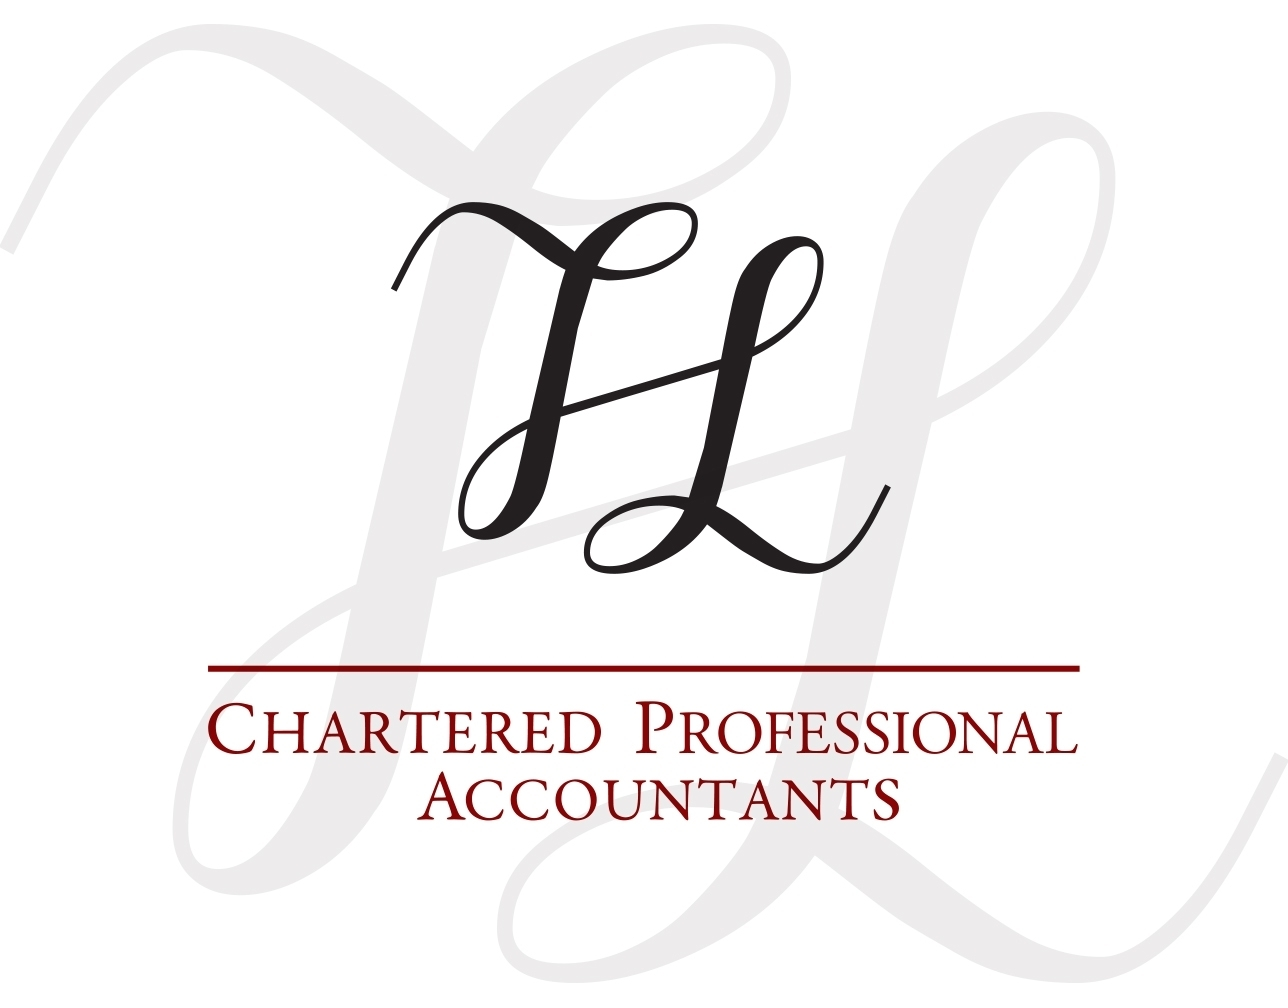 HL Chartered Professional Accountants